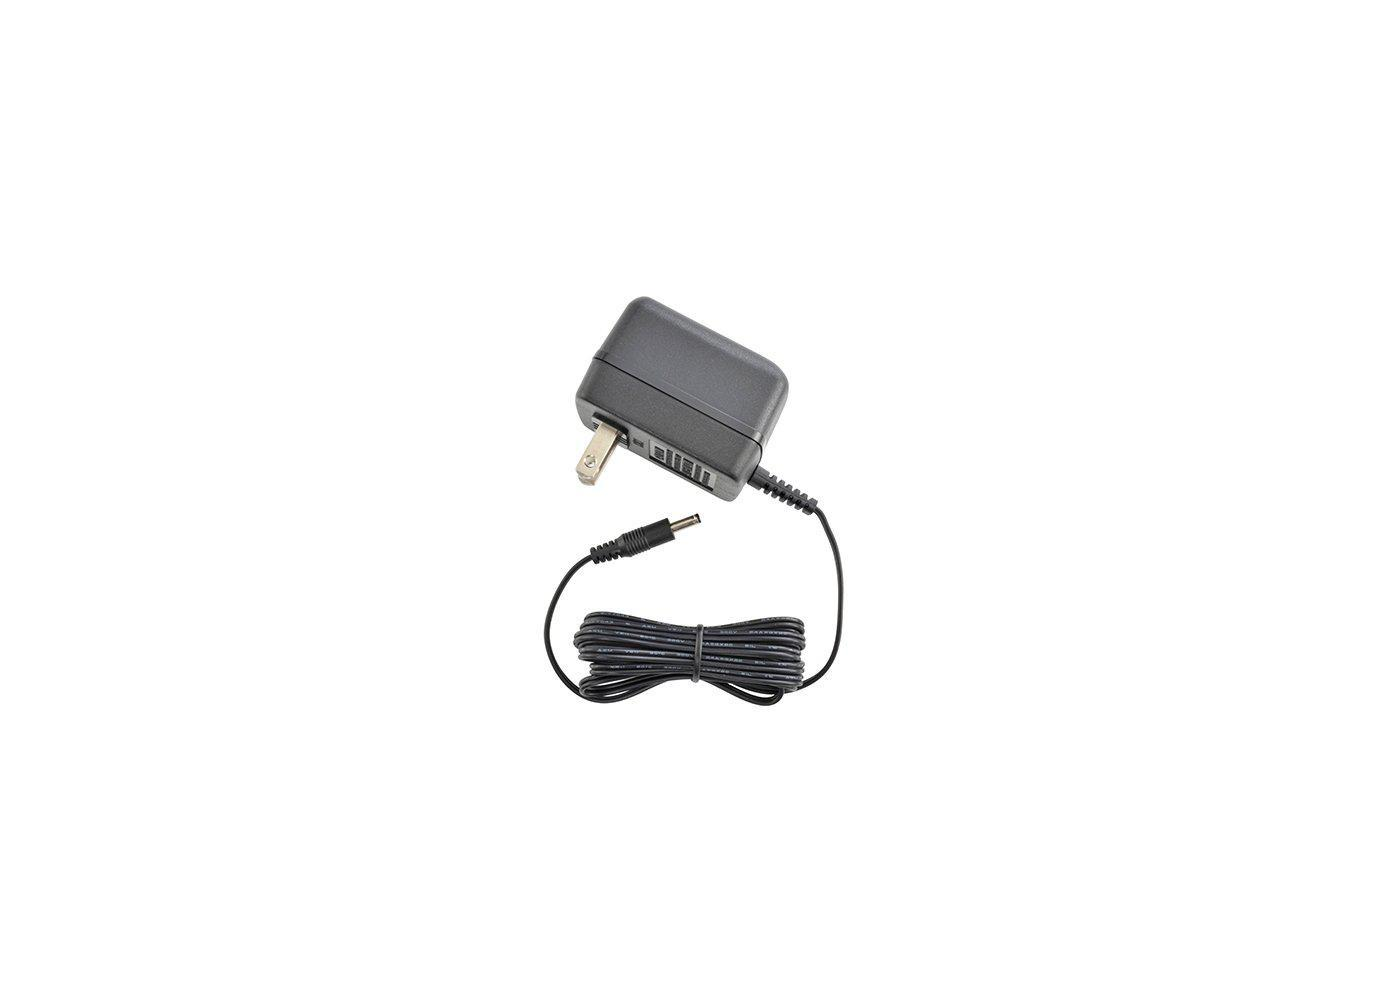 CA45CB - Cobra® AC Wall Charger for Cobra® Handheld Radios